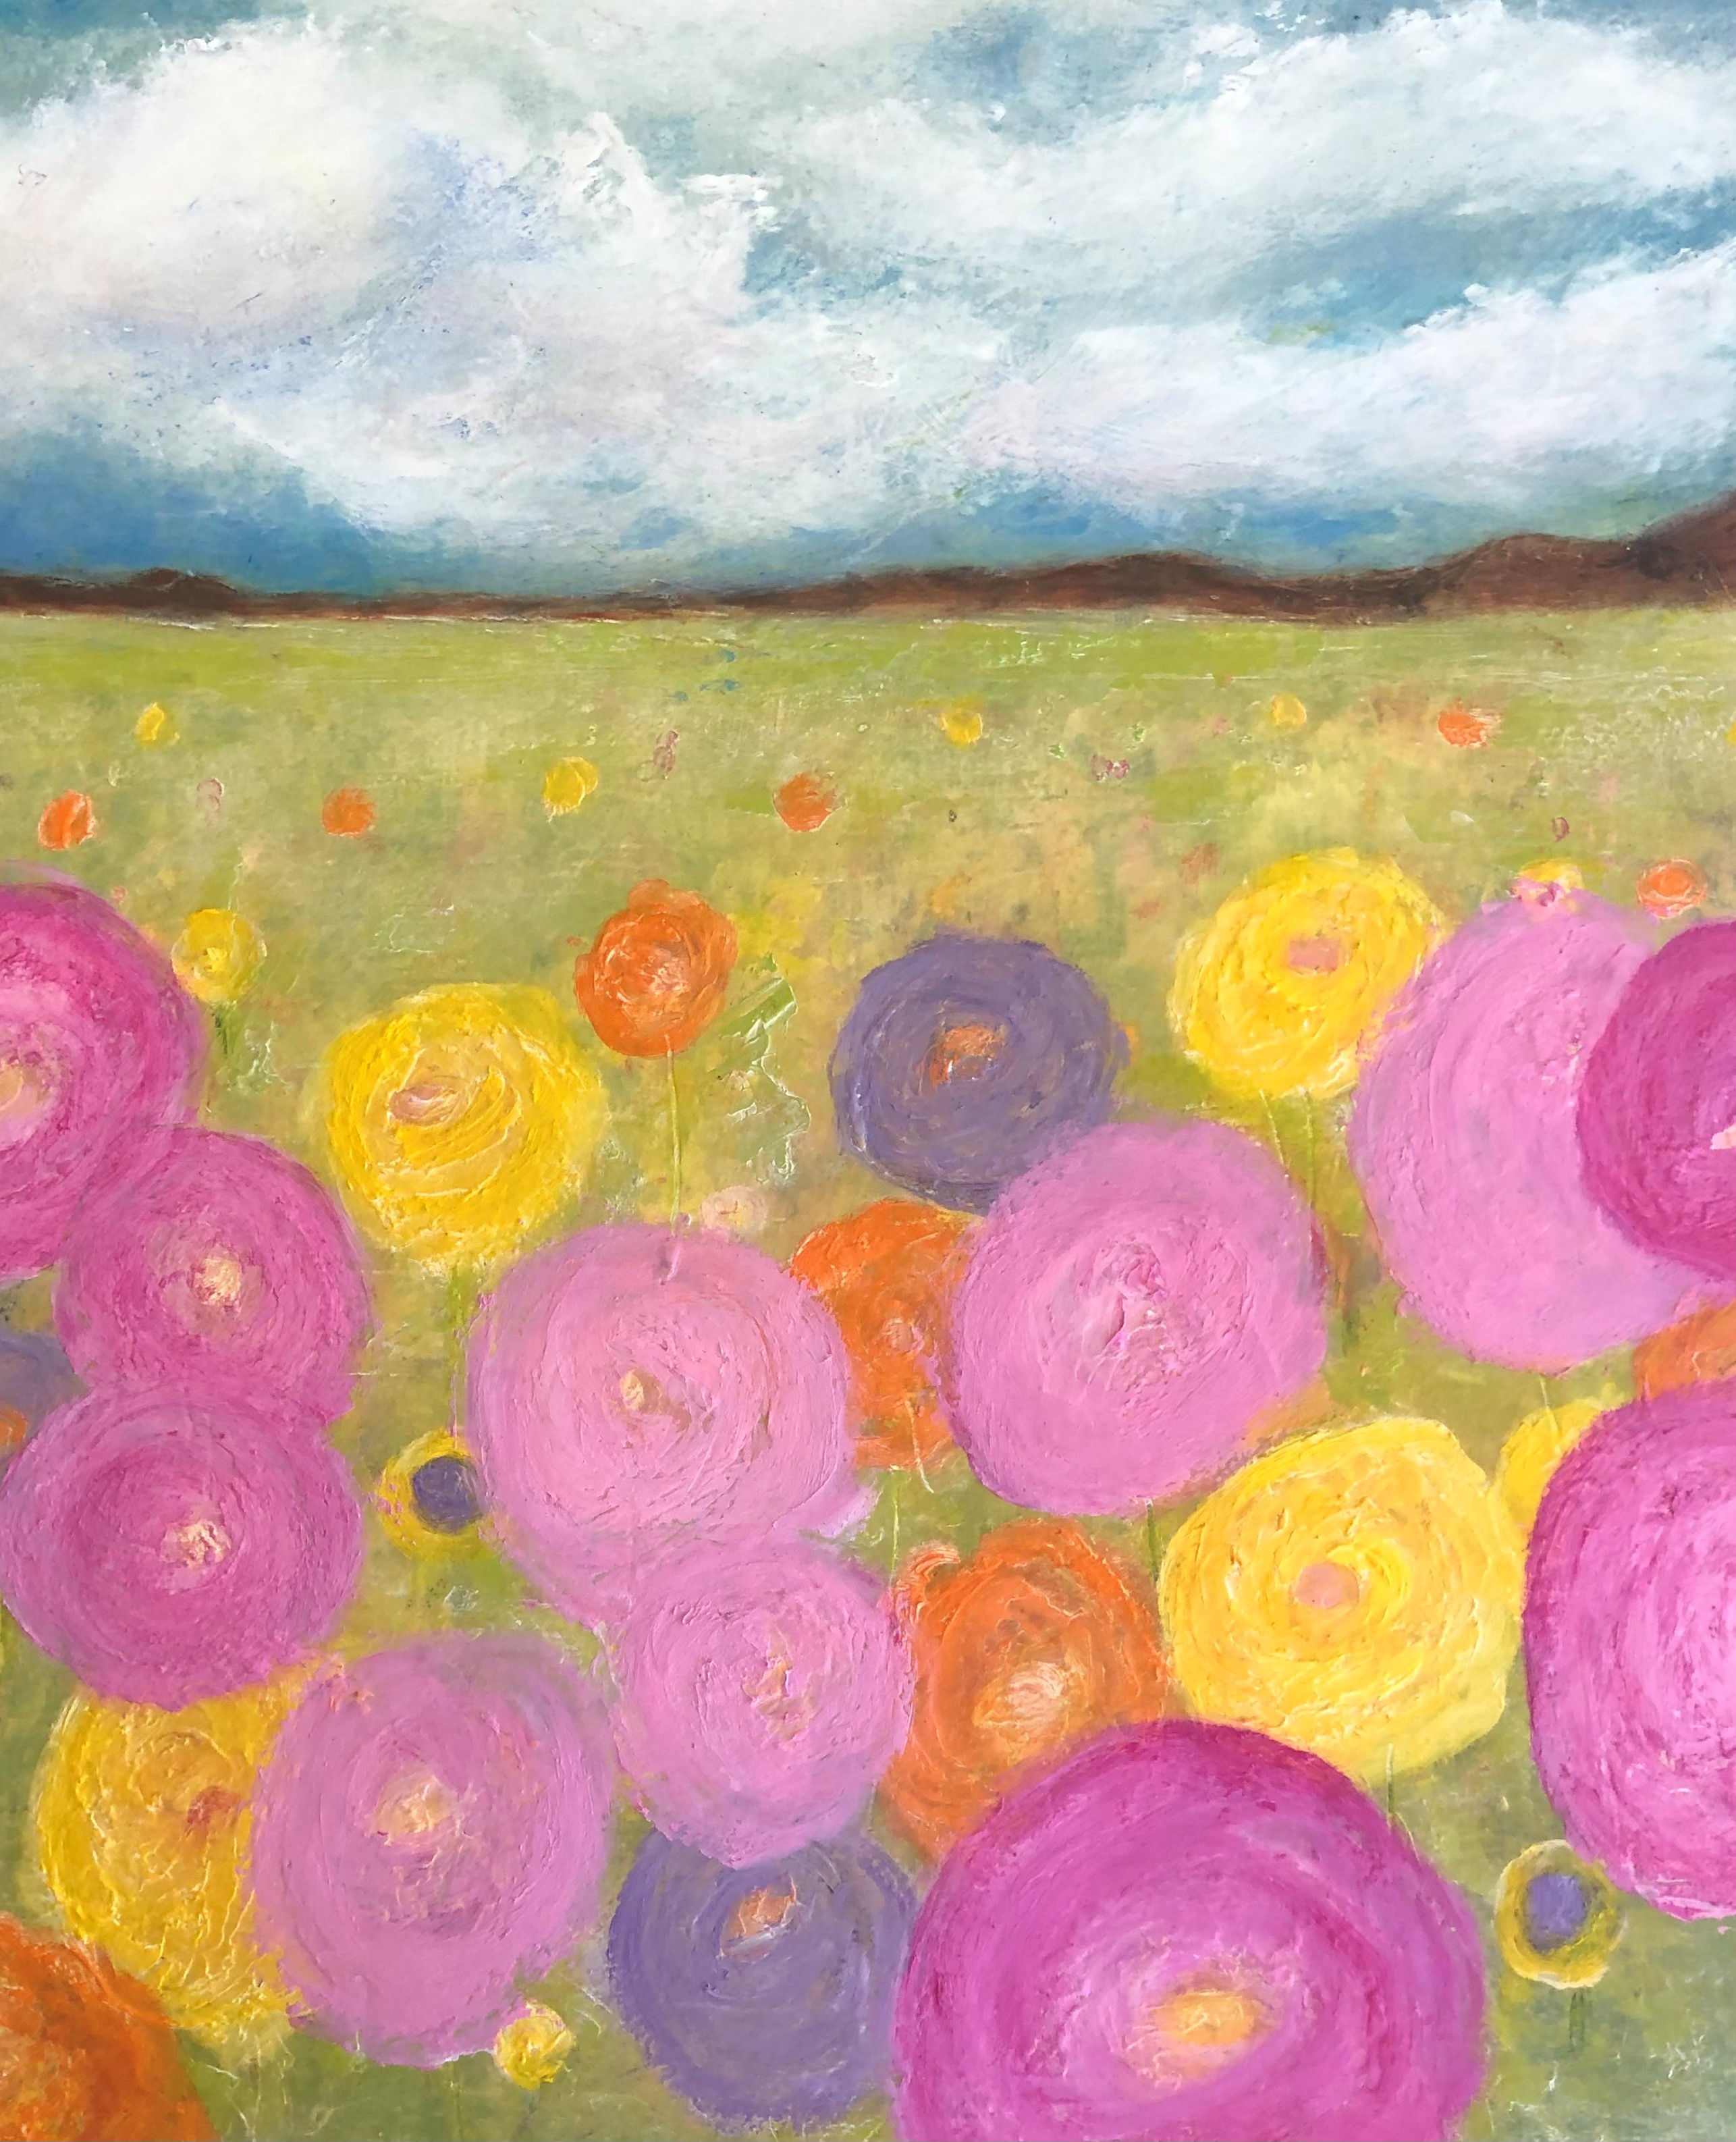 FIELD OF BRIGHT FLOWERS